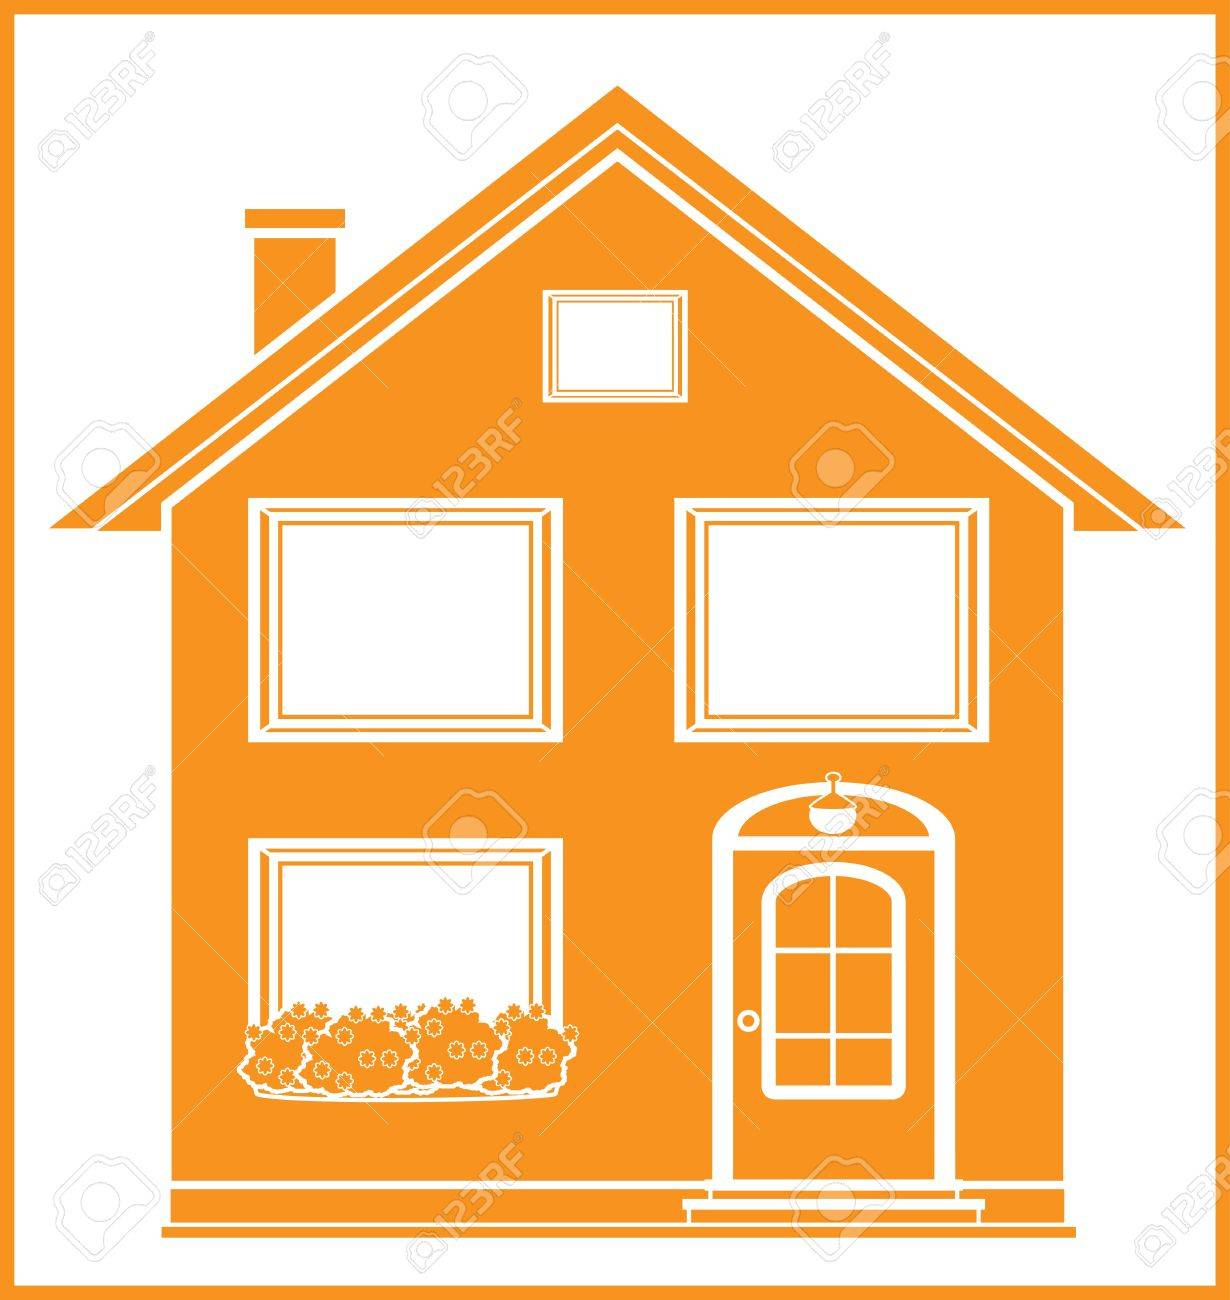 real estate symbol with isolated house silhouette in frame Stock Vector - 14059385